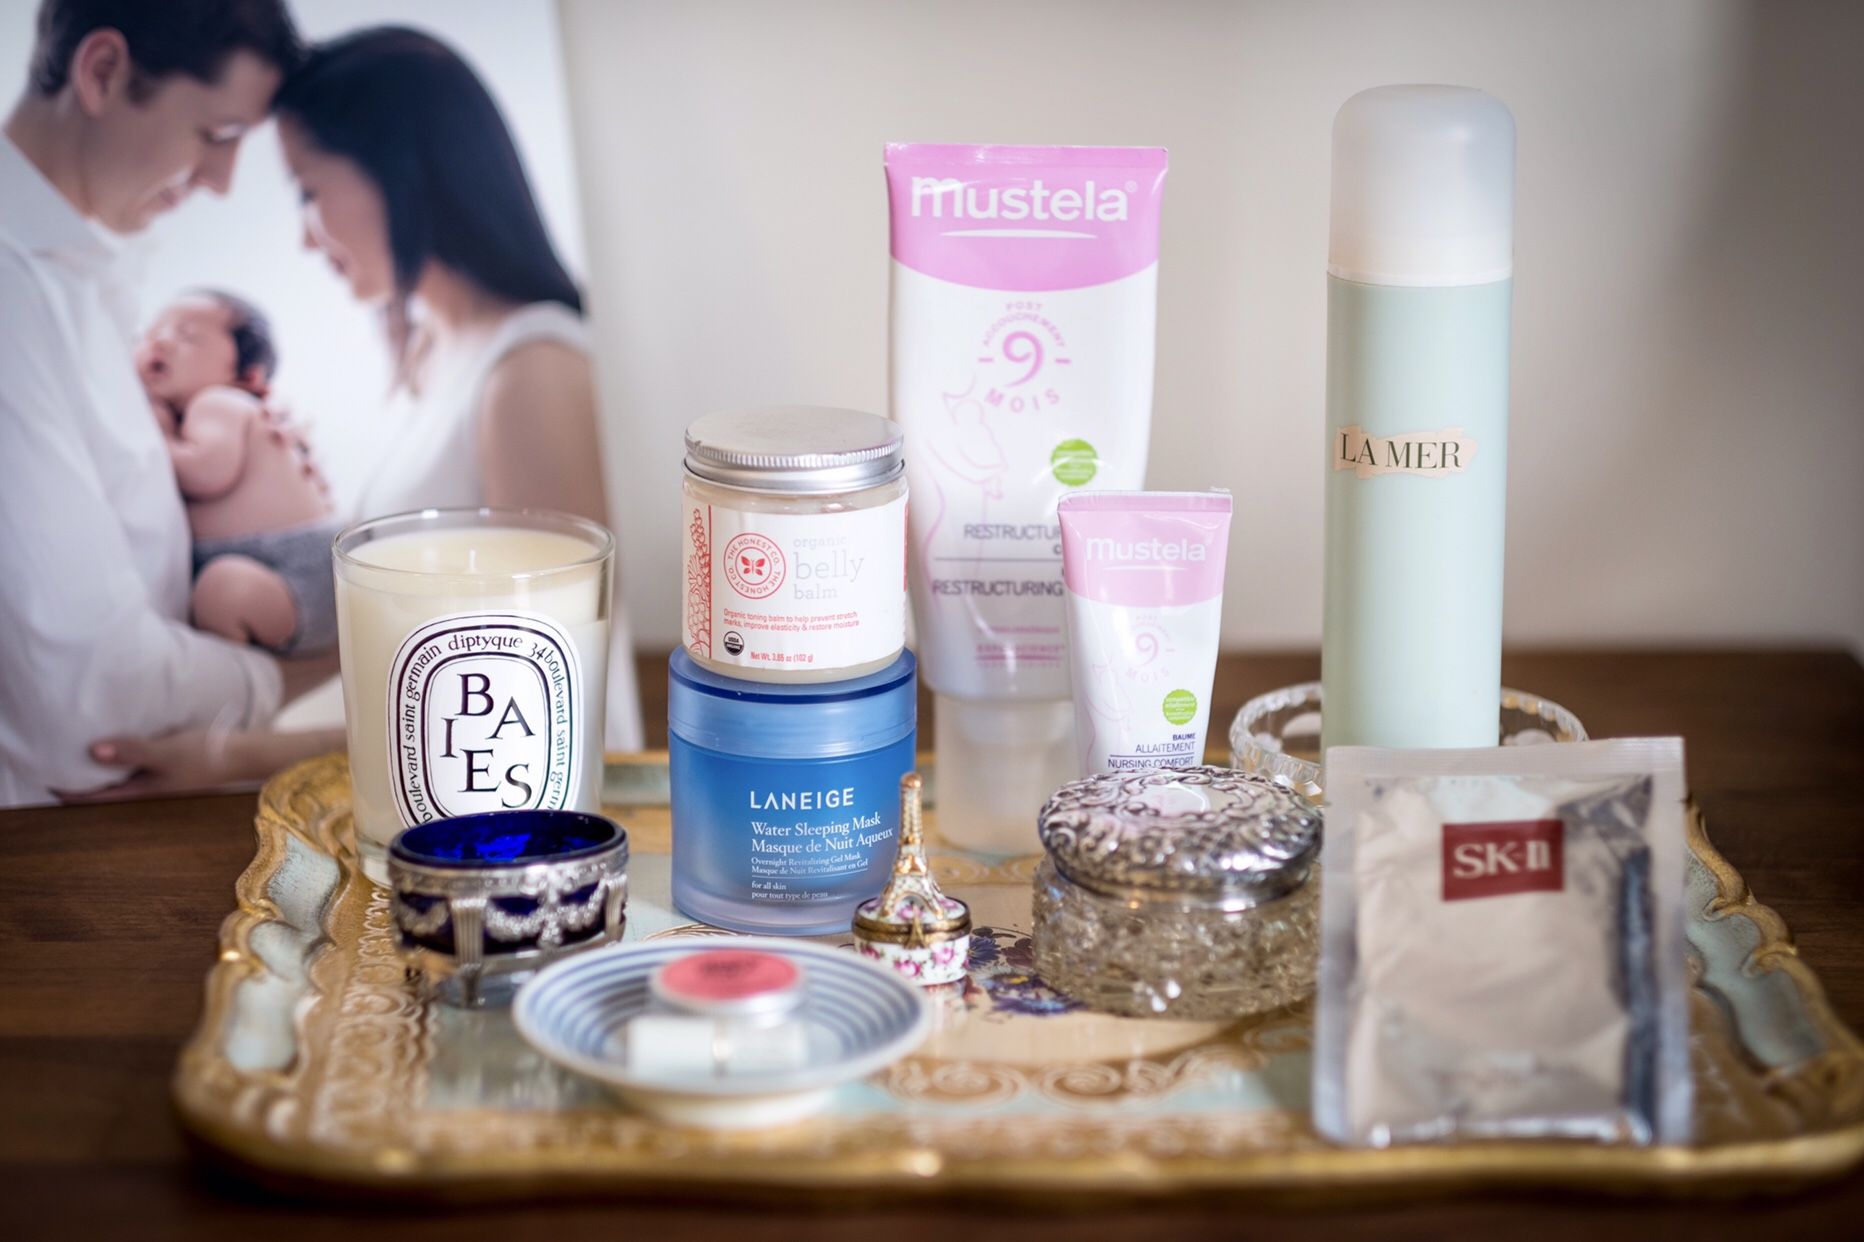 Maternity Must-Haves - Pregnancy-Safe Beauty Products - Maternity Beauty Products Tray